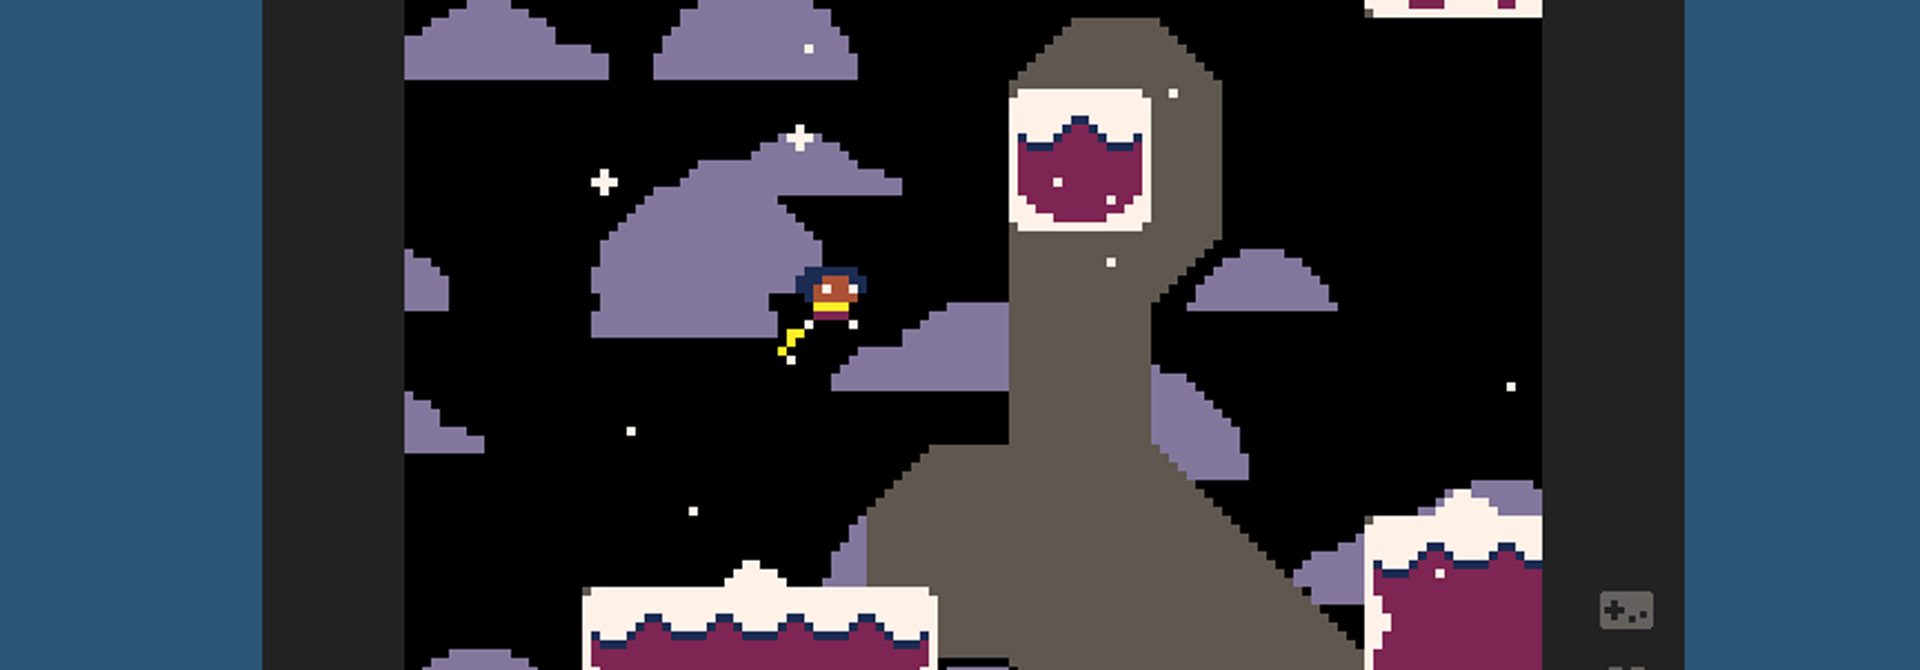 There's Now A Celeste Sequel — But We Mean The Original